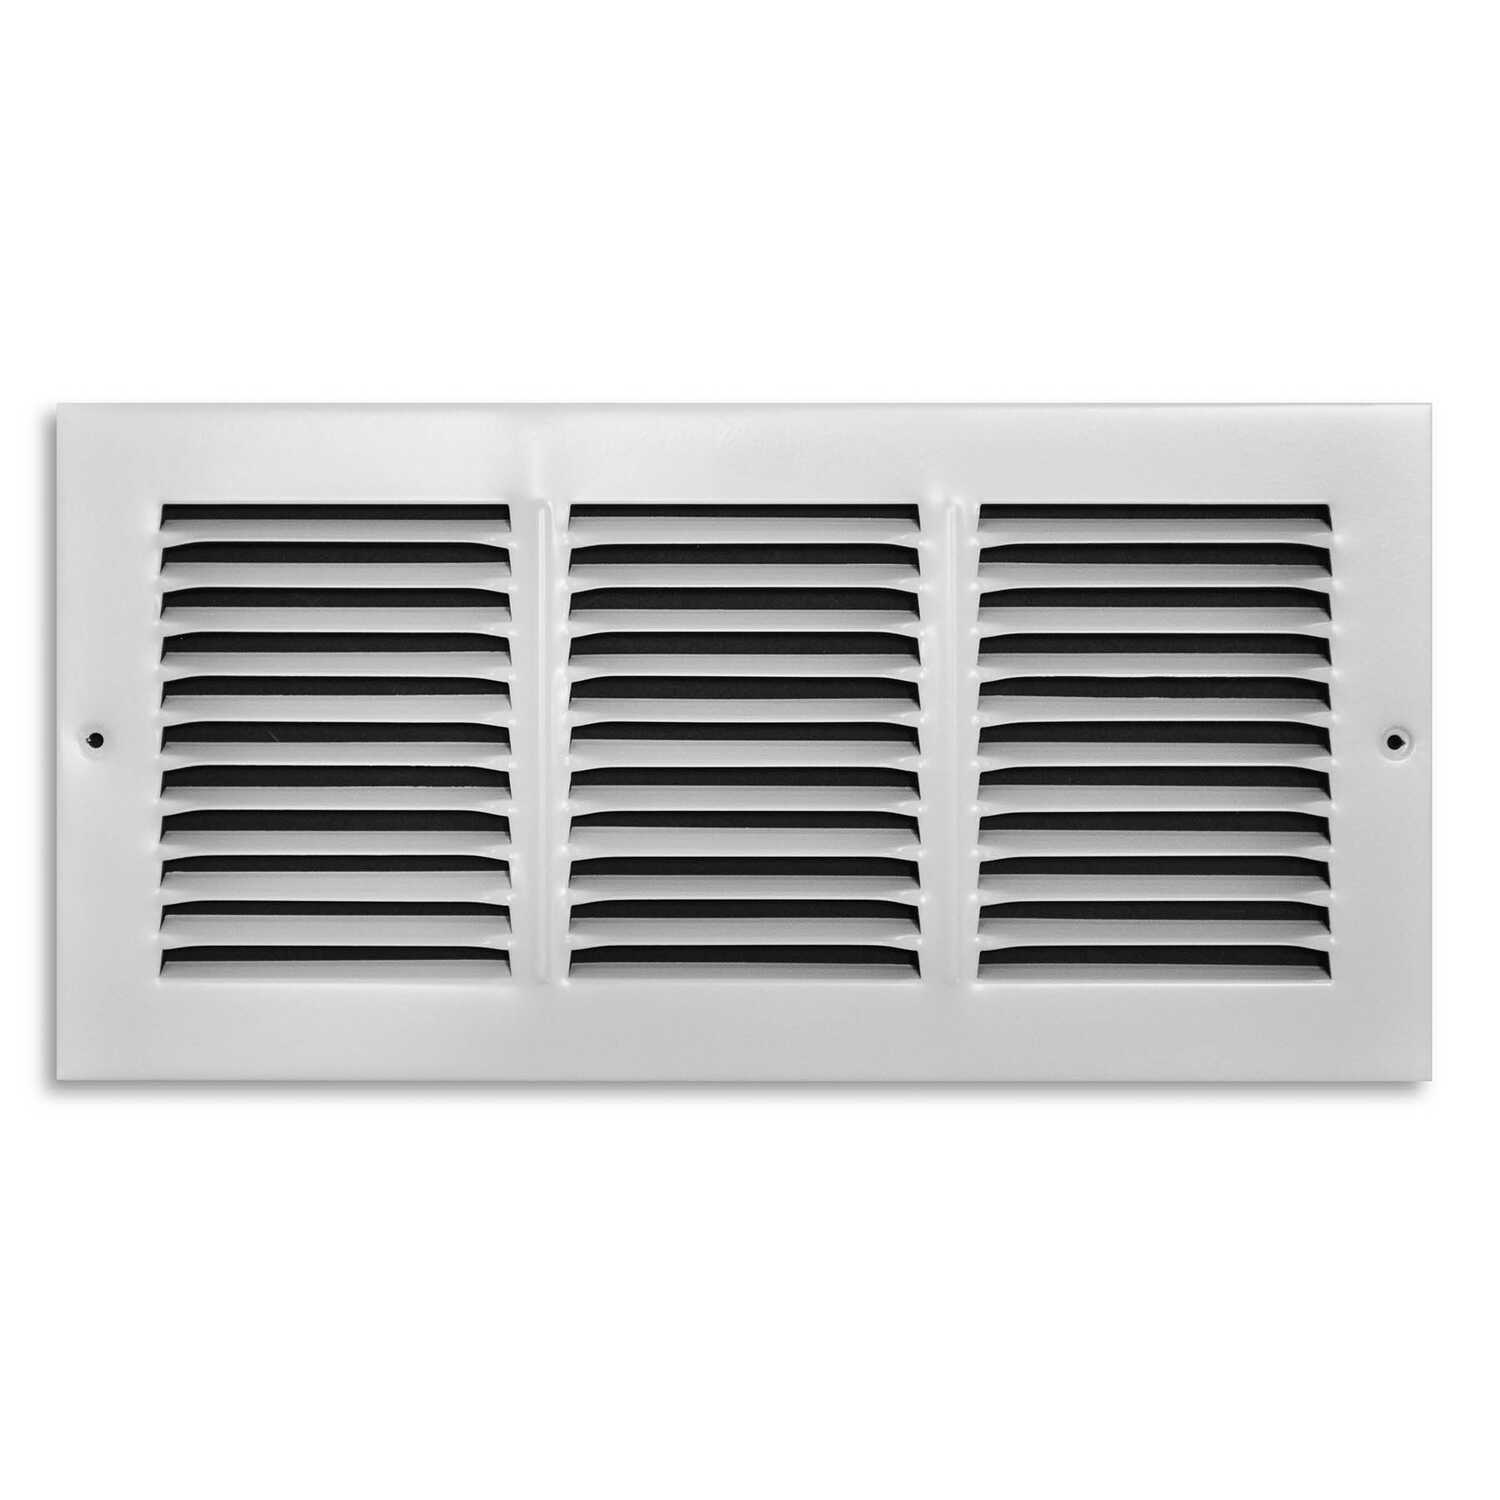 Tru Aire  3/4 in. D x 6 in. H Powder Coat  Return Air Grille  White  1-Way  Steel